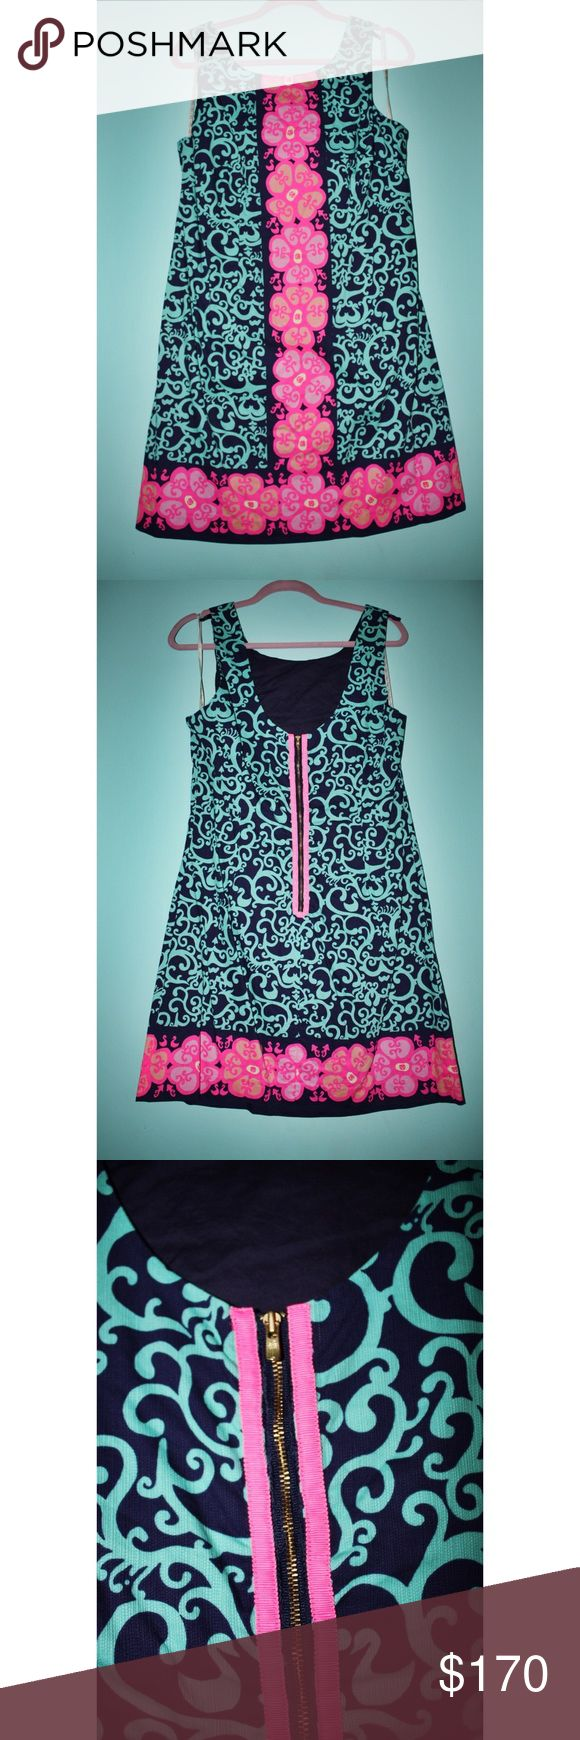 Lilly Pulitzer fluorescent Delia dress Only worn a handful of times! So beautiful but it's too short on me now. Lilly Pulitzer Dresses Mini